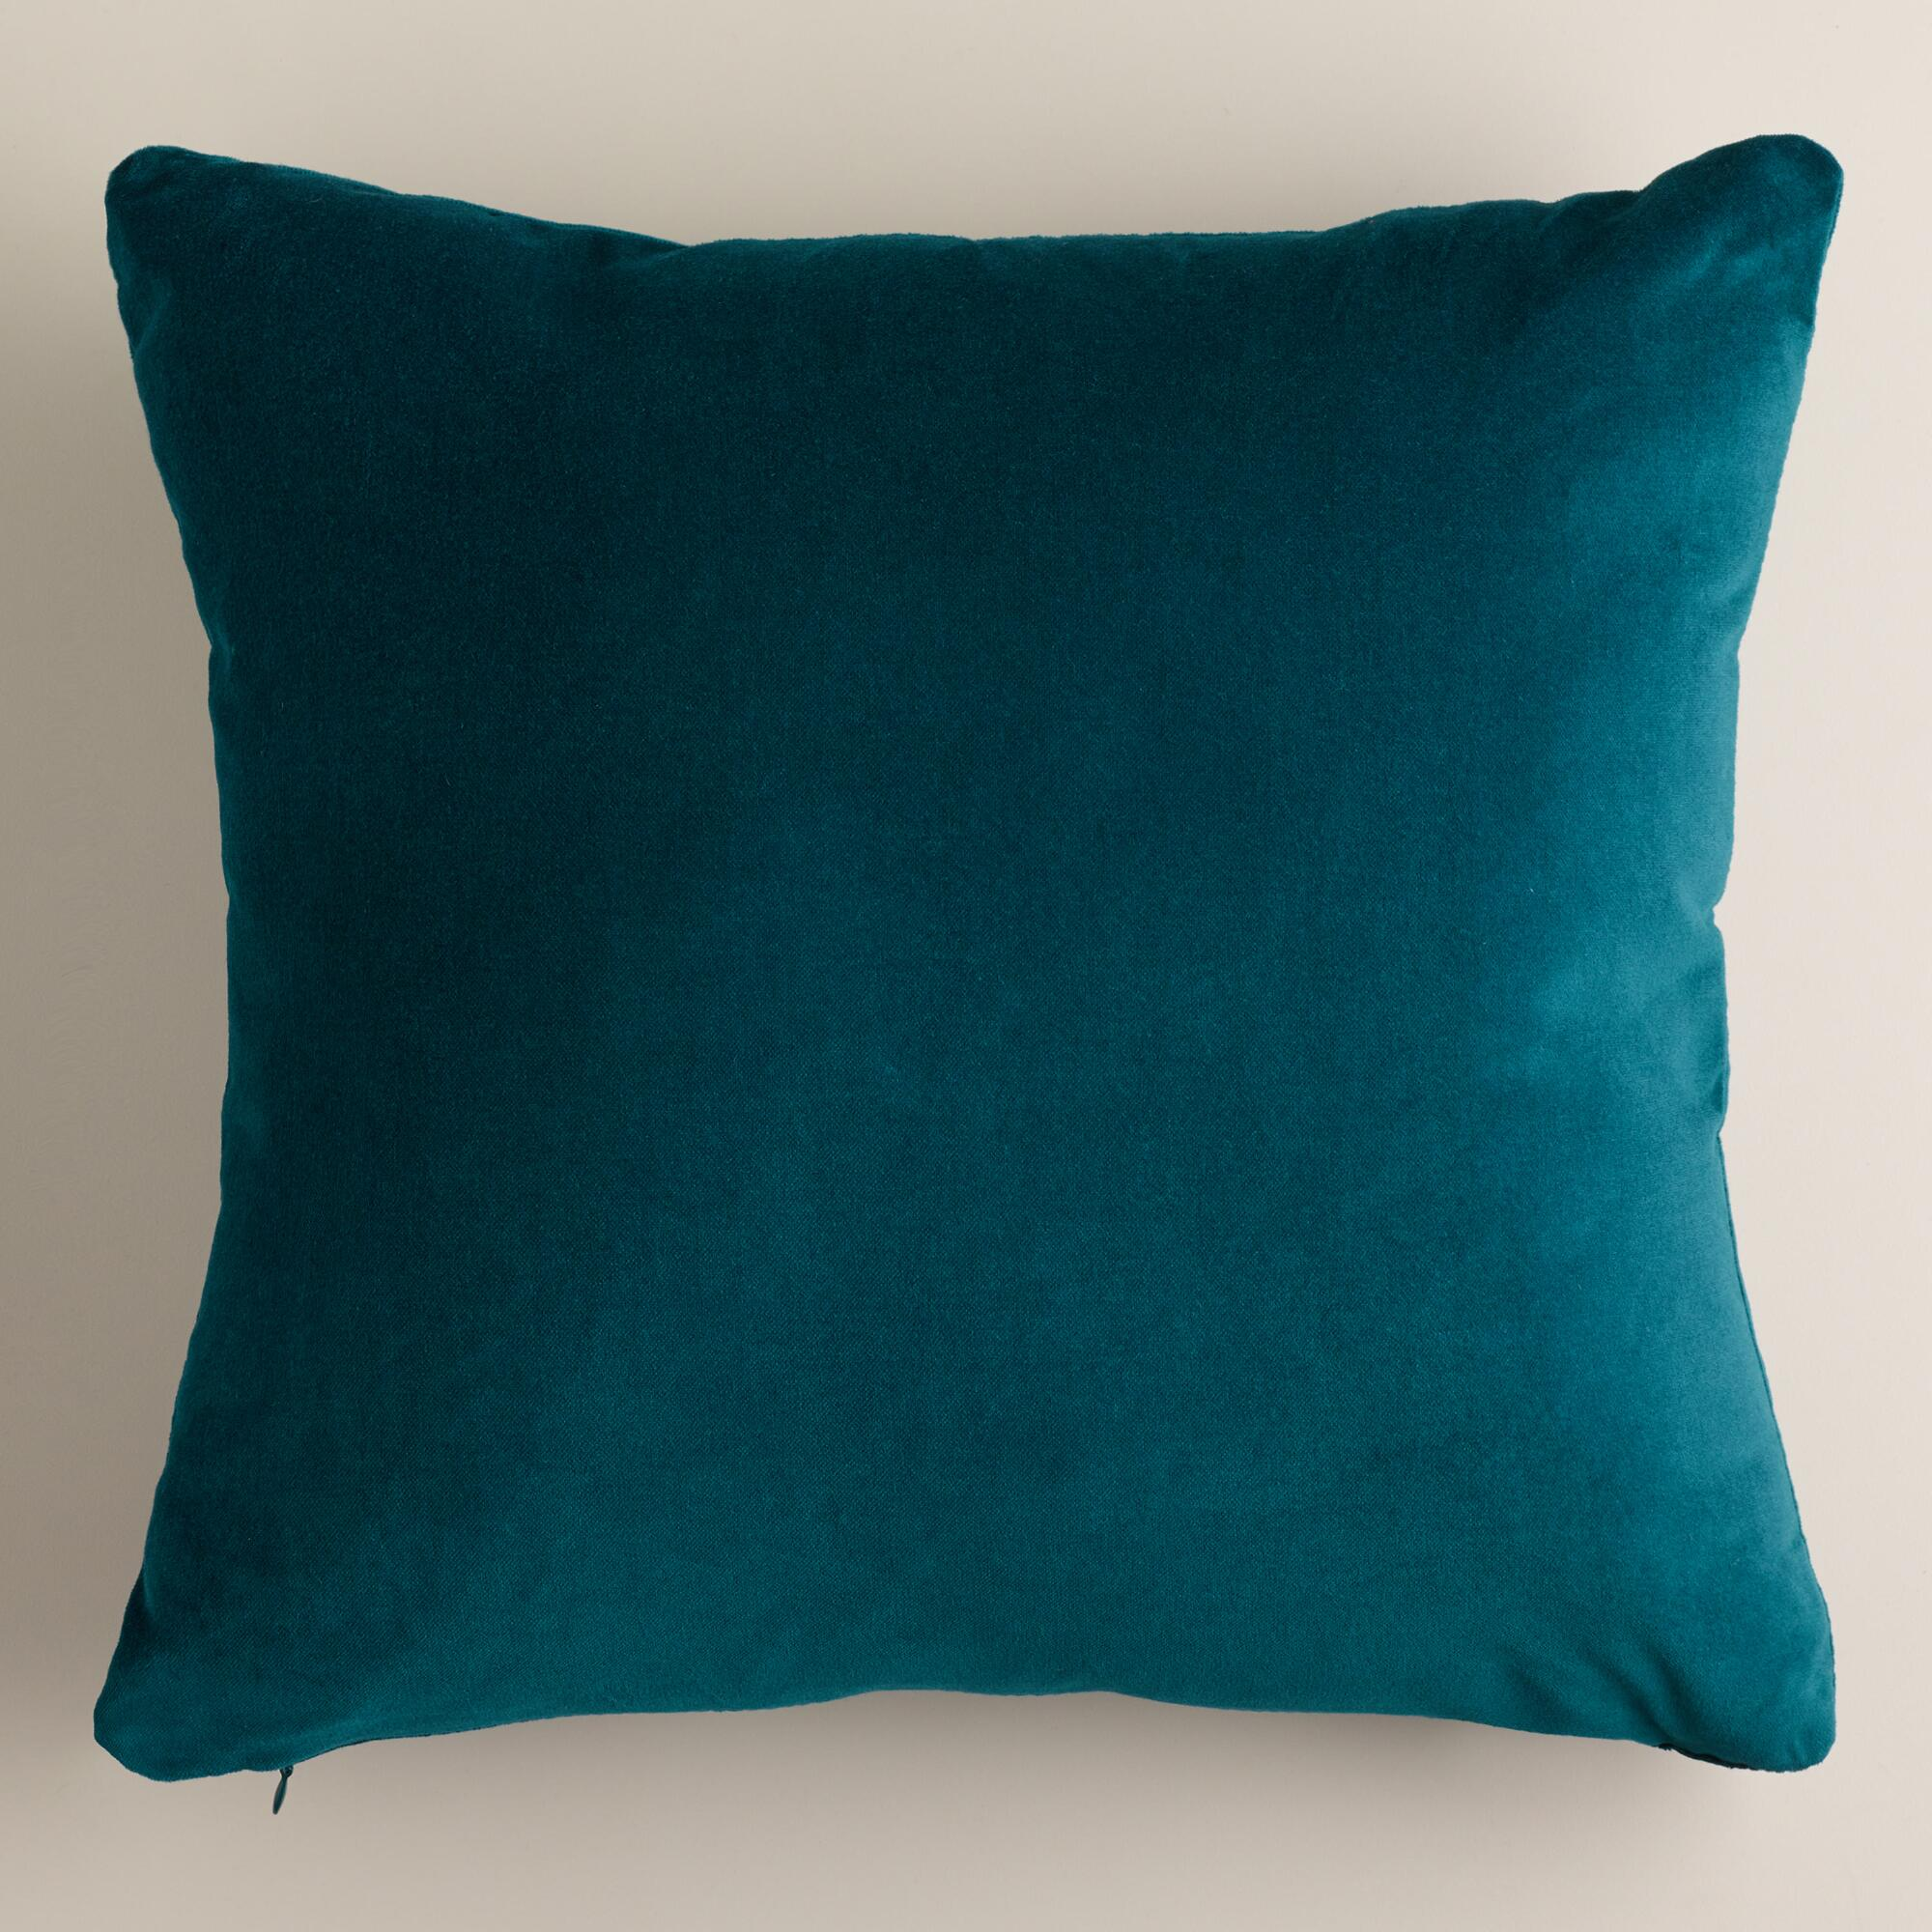 Throw Pillows Velvet : Teal Velvet Throw Pillows World Market